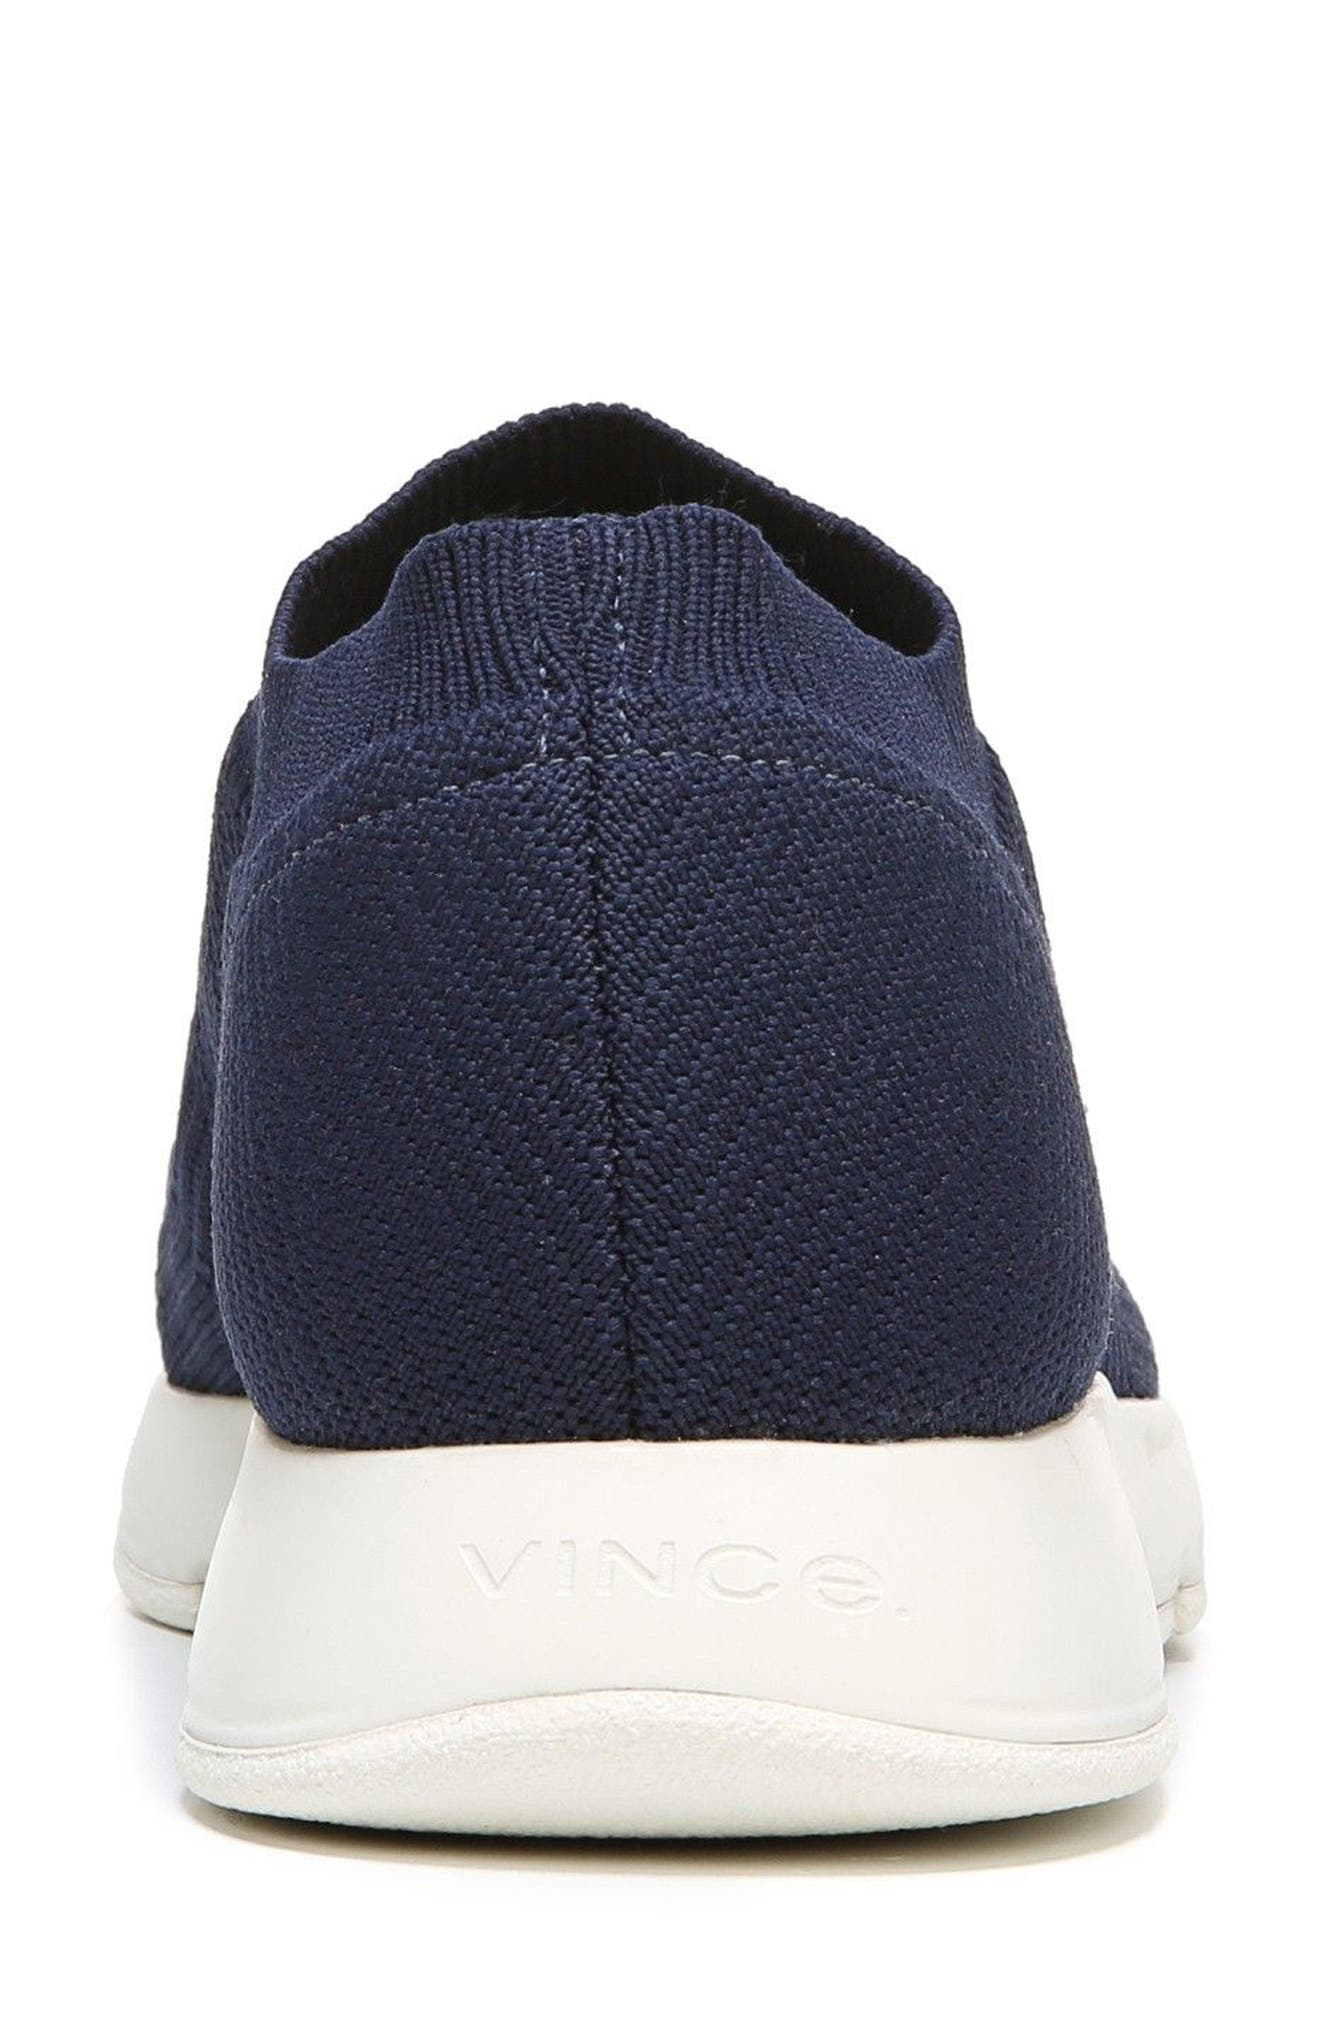 Theroux Slip-On Knit Sneaker,                             Alternate thumbnail 21, color,